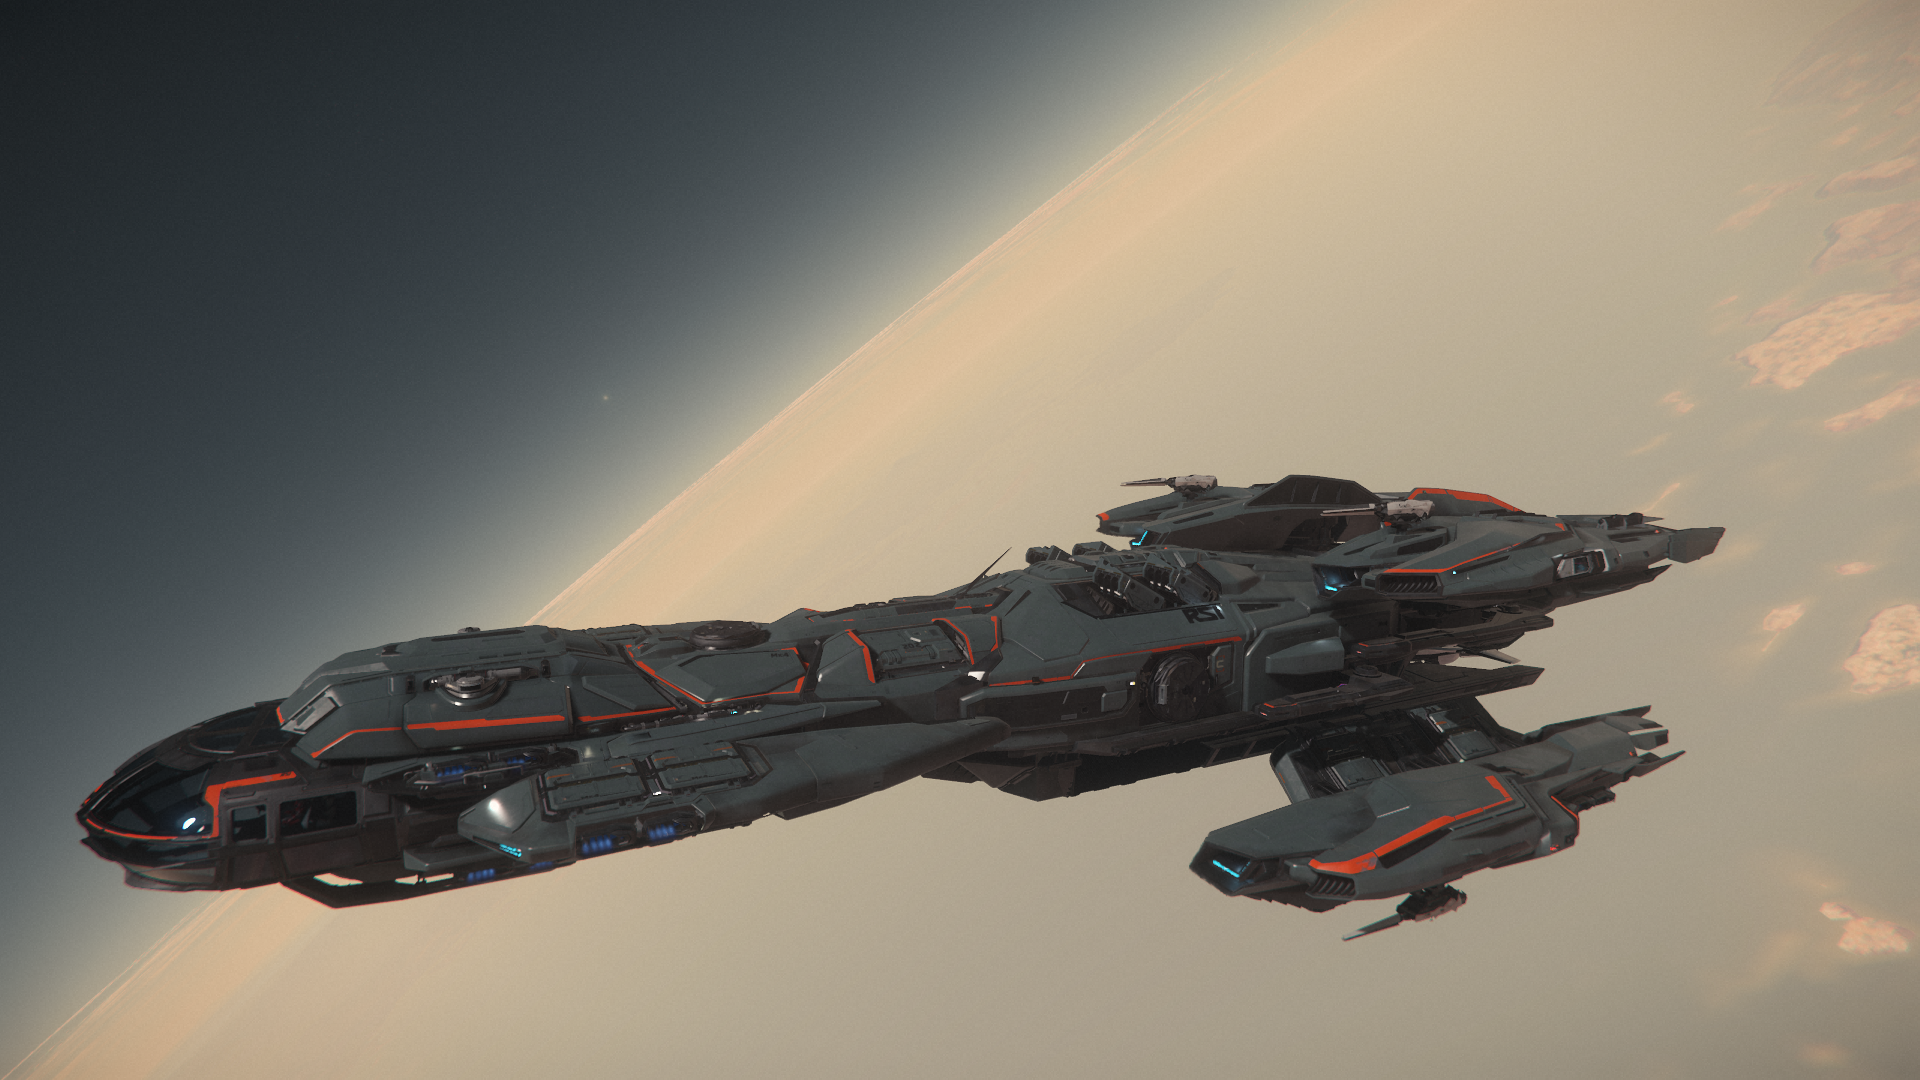 Constellation Aquila